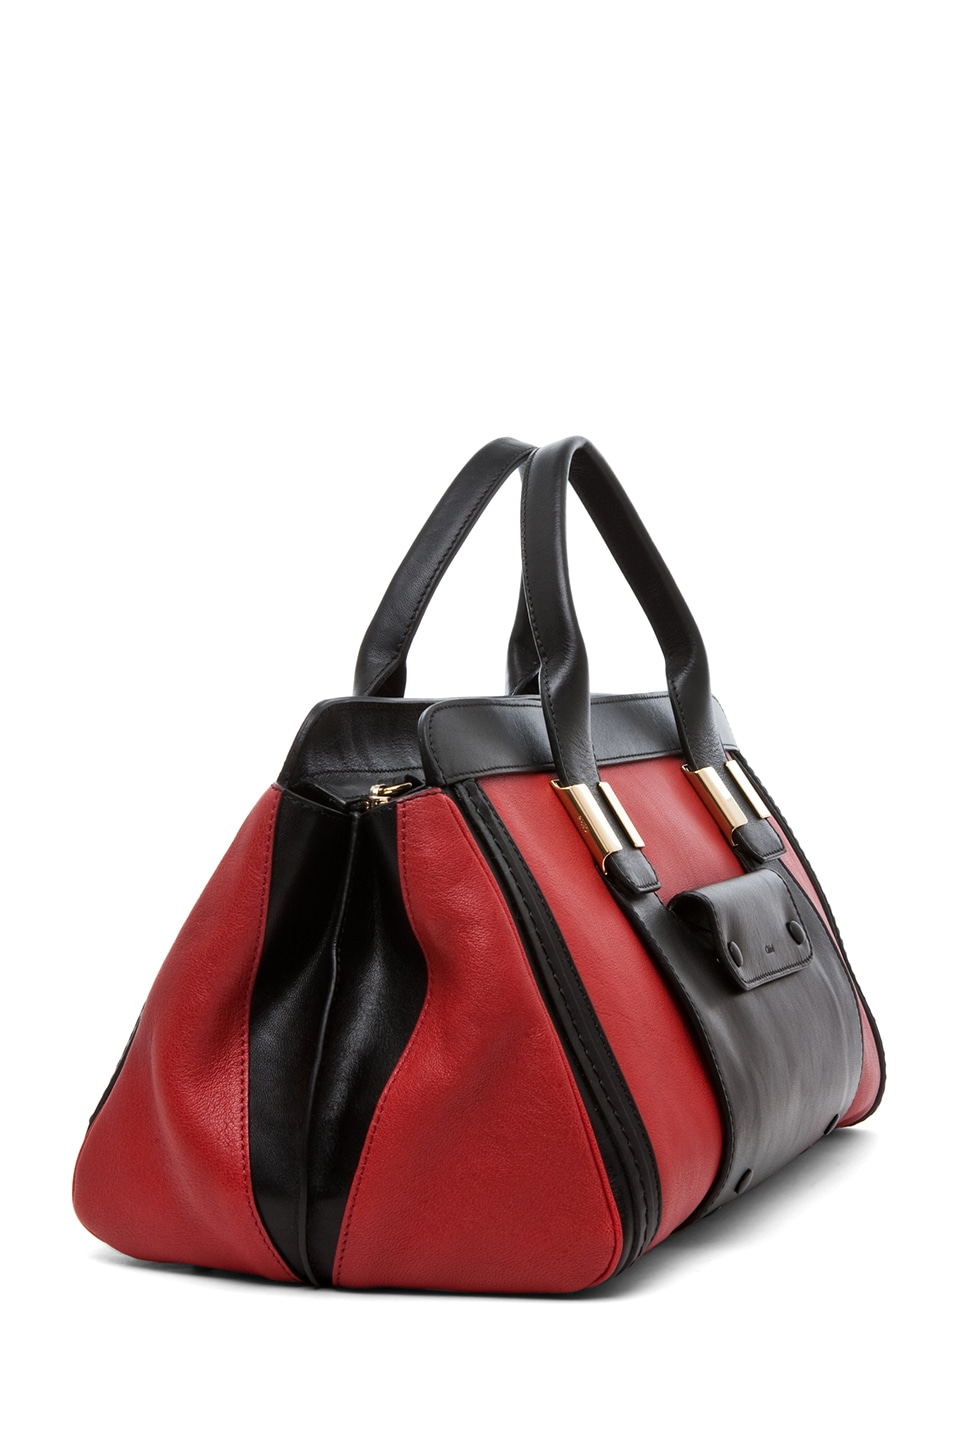 Image 3 of Chloe Alice Springs Medium Handbag in Holly Berry